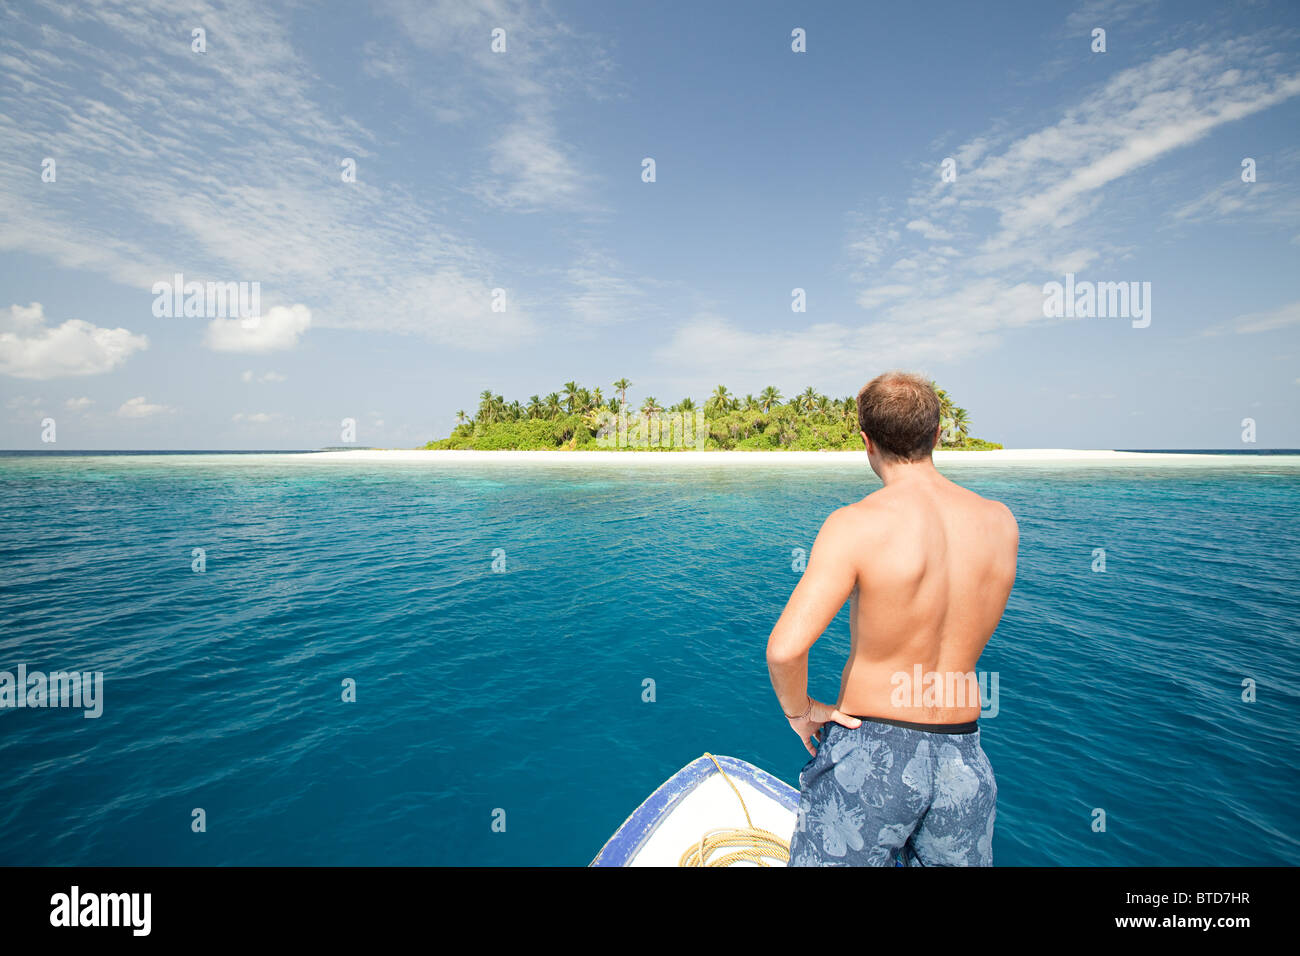 Man with boat, Baughagello Island, South Huvadhu Atoll, Maldives - Stock Image